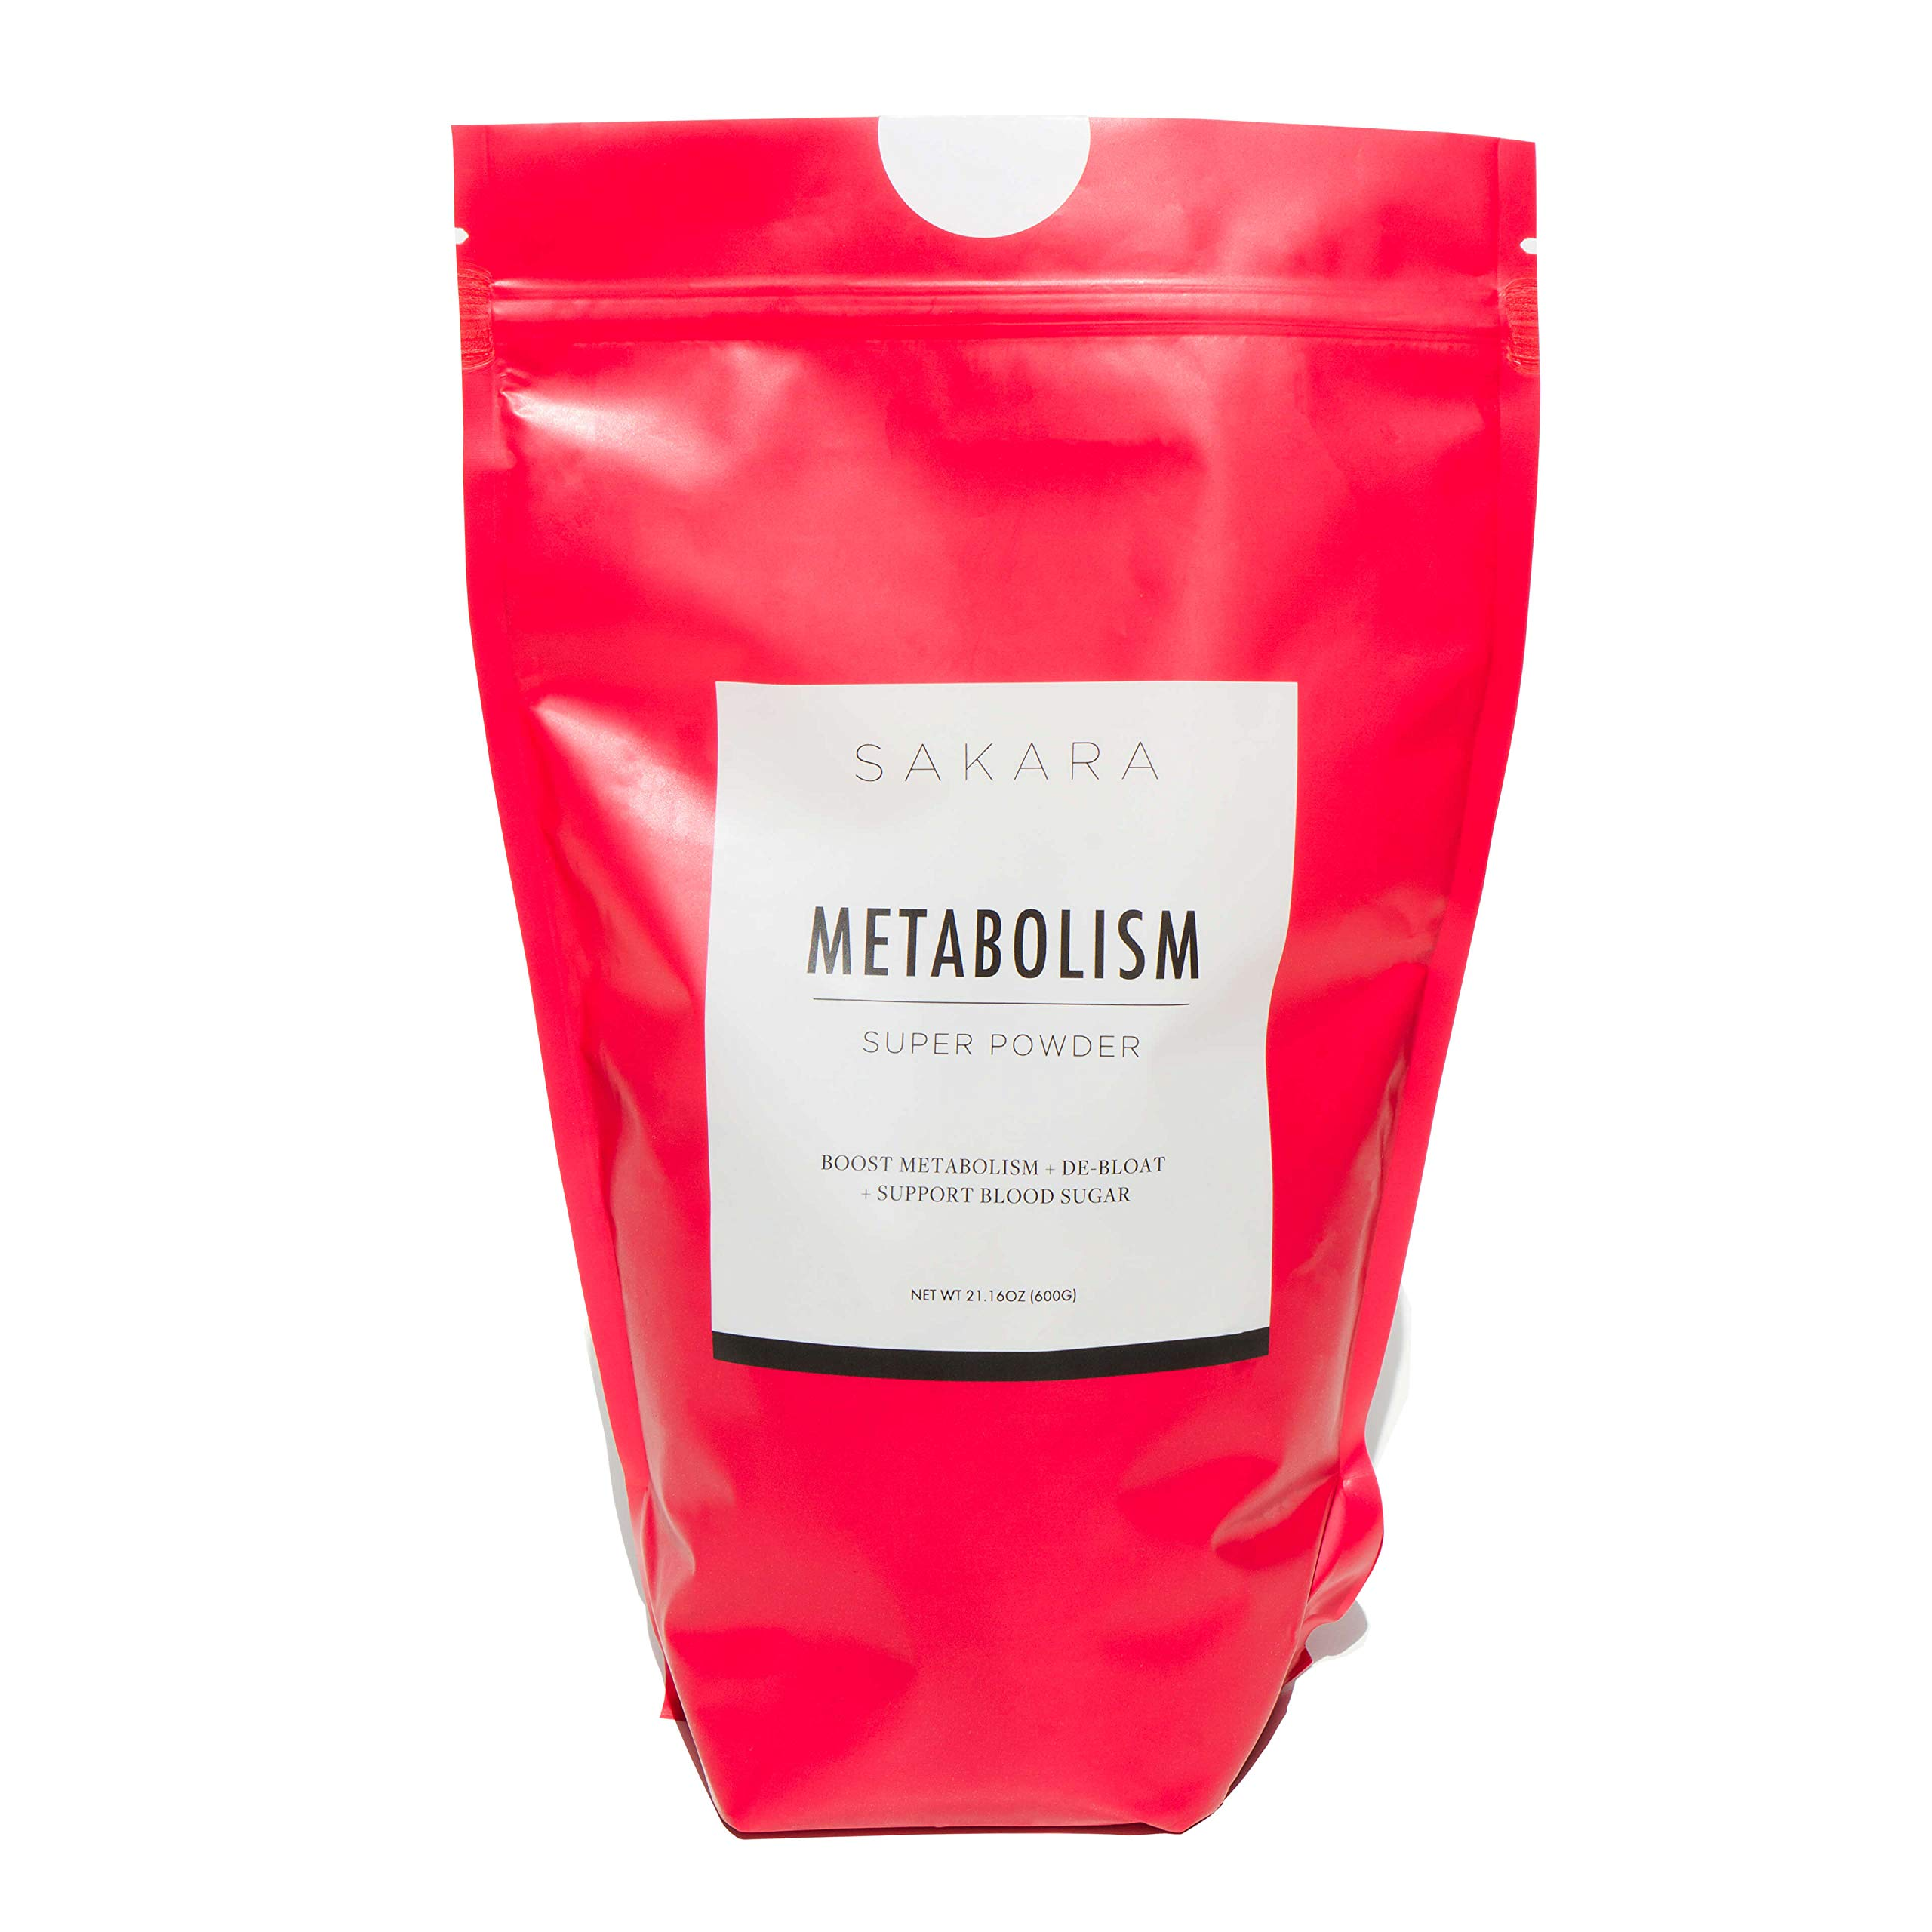 Metabolism Super Powder for Weight Loss, 30 Pack by SAKARA